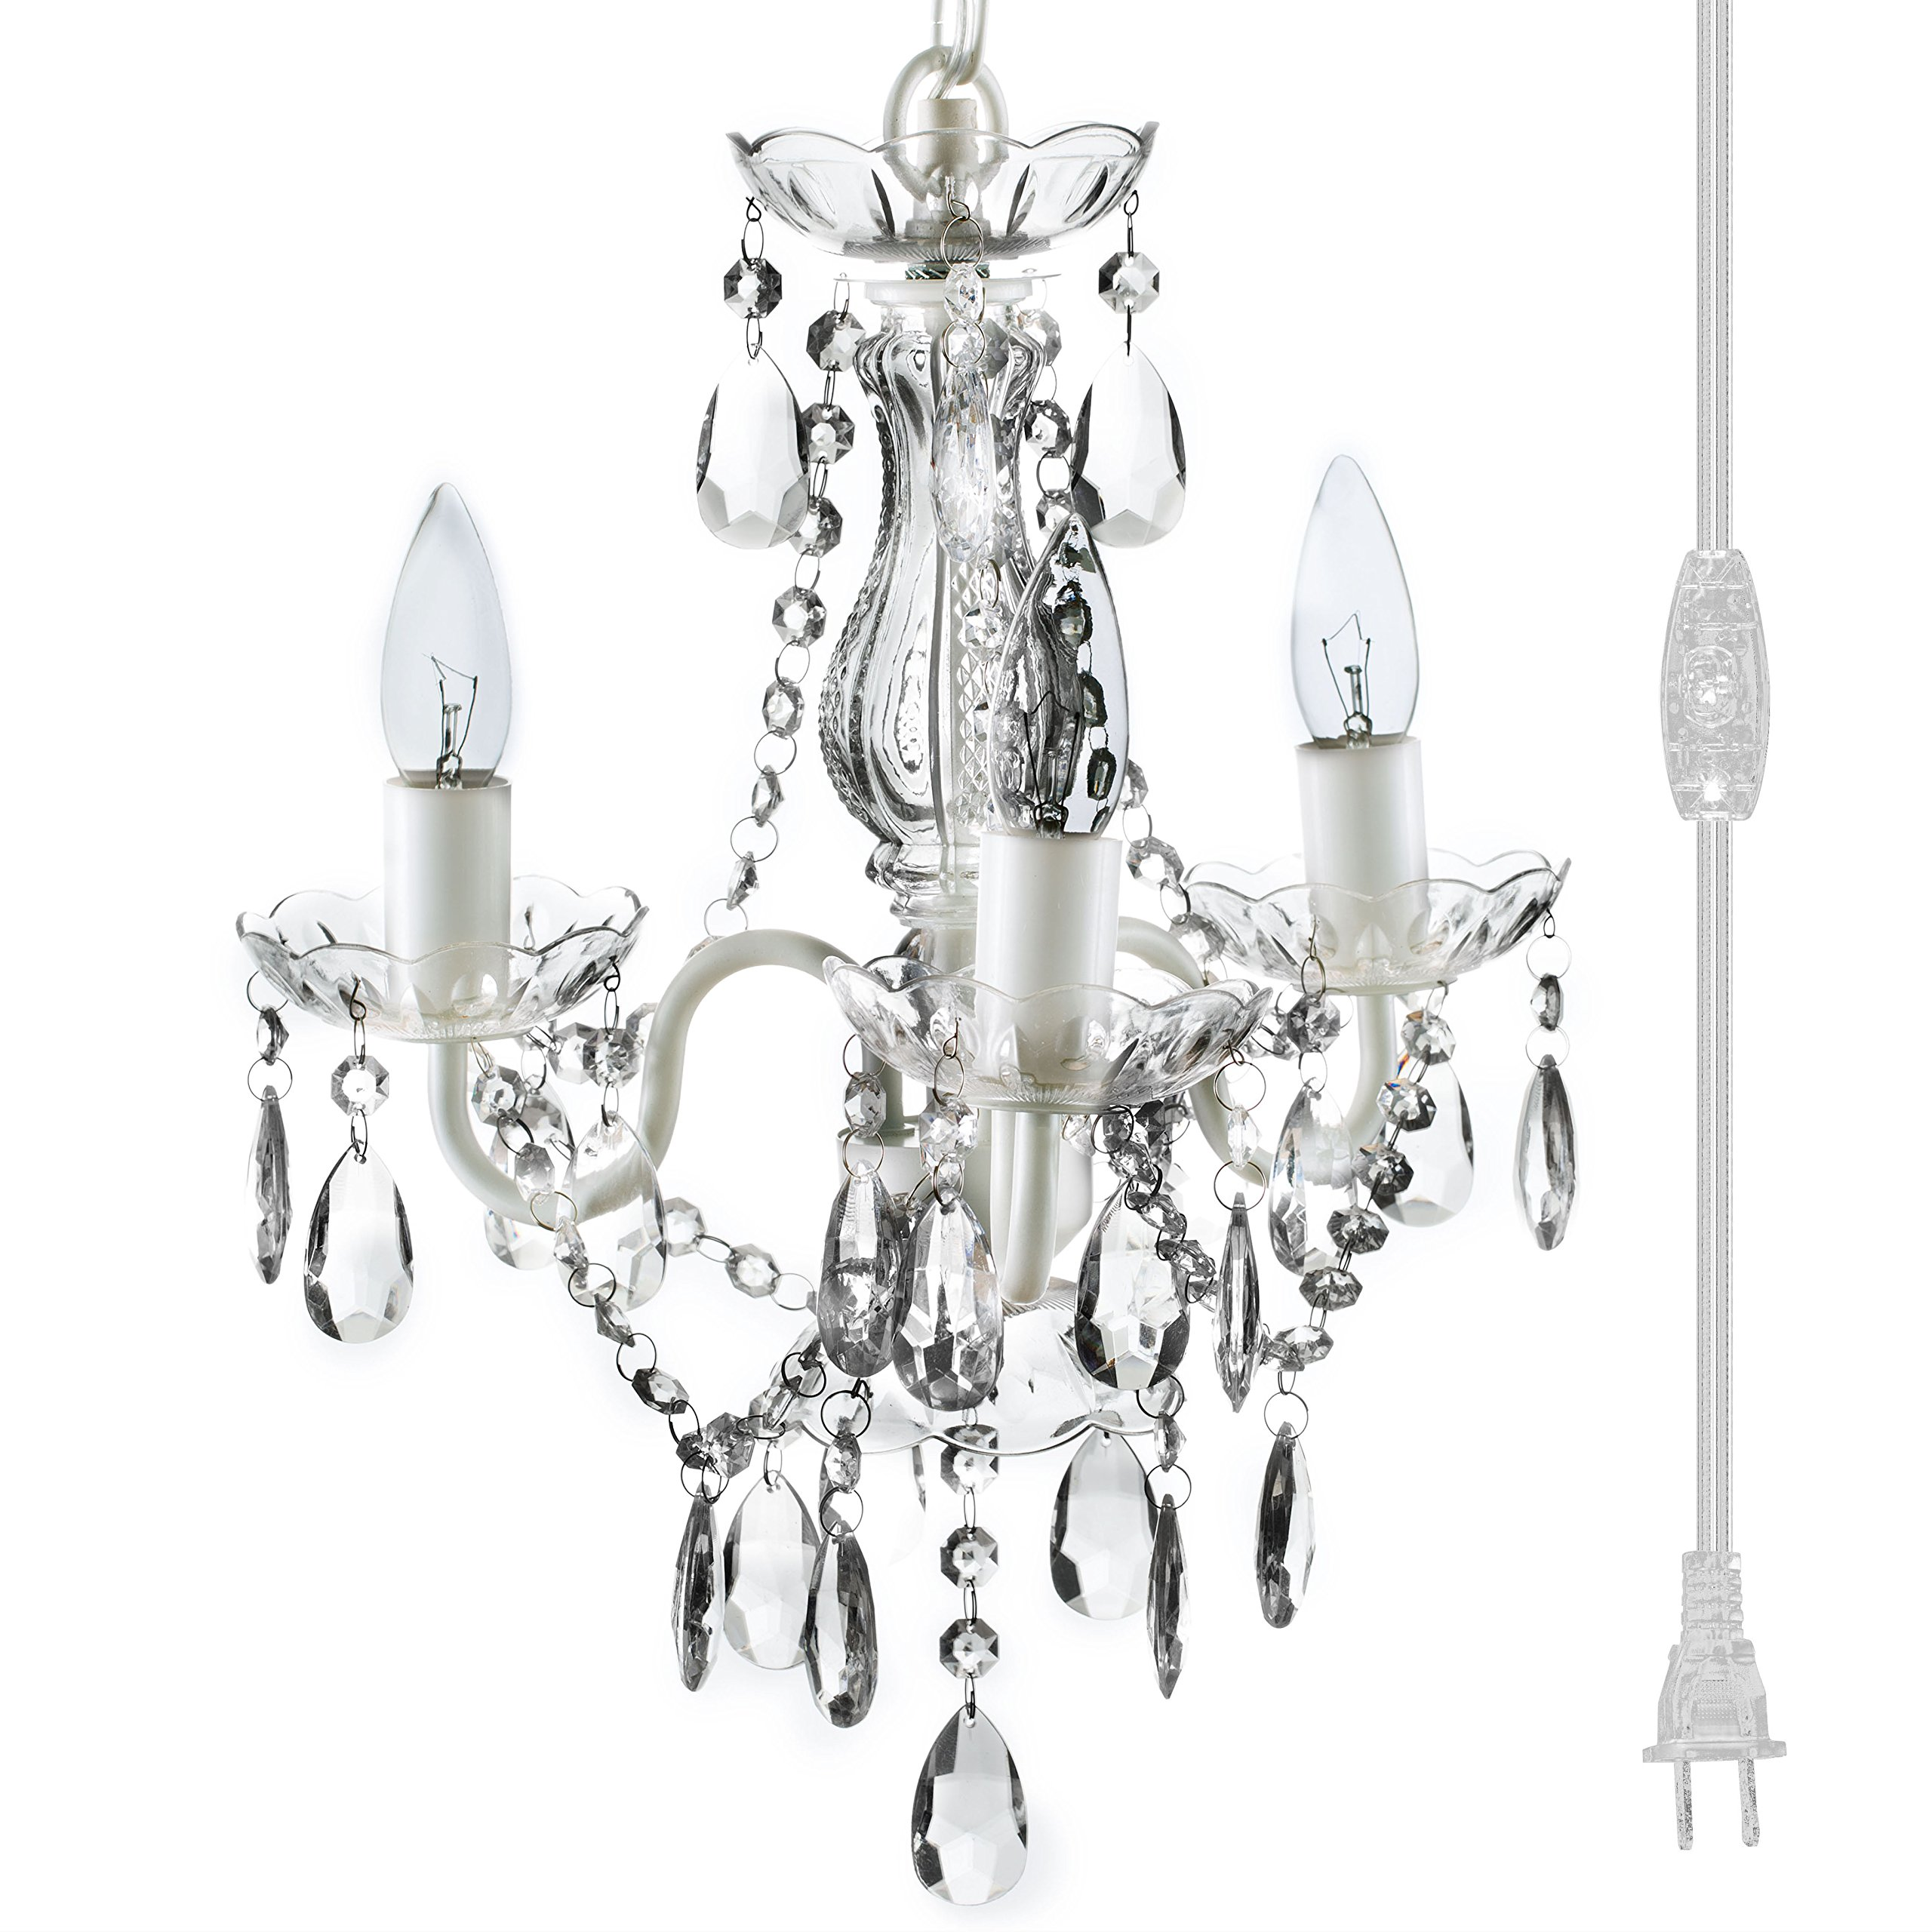 The original gypsy color 3 light mini plug in crystal chandelier for h17 w12